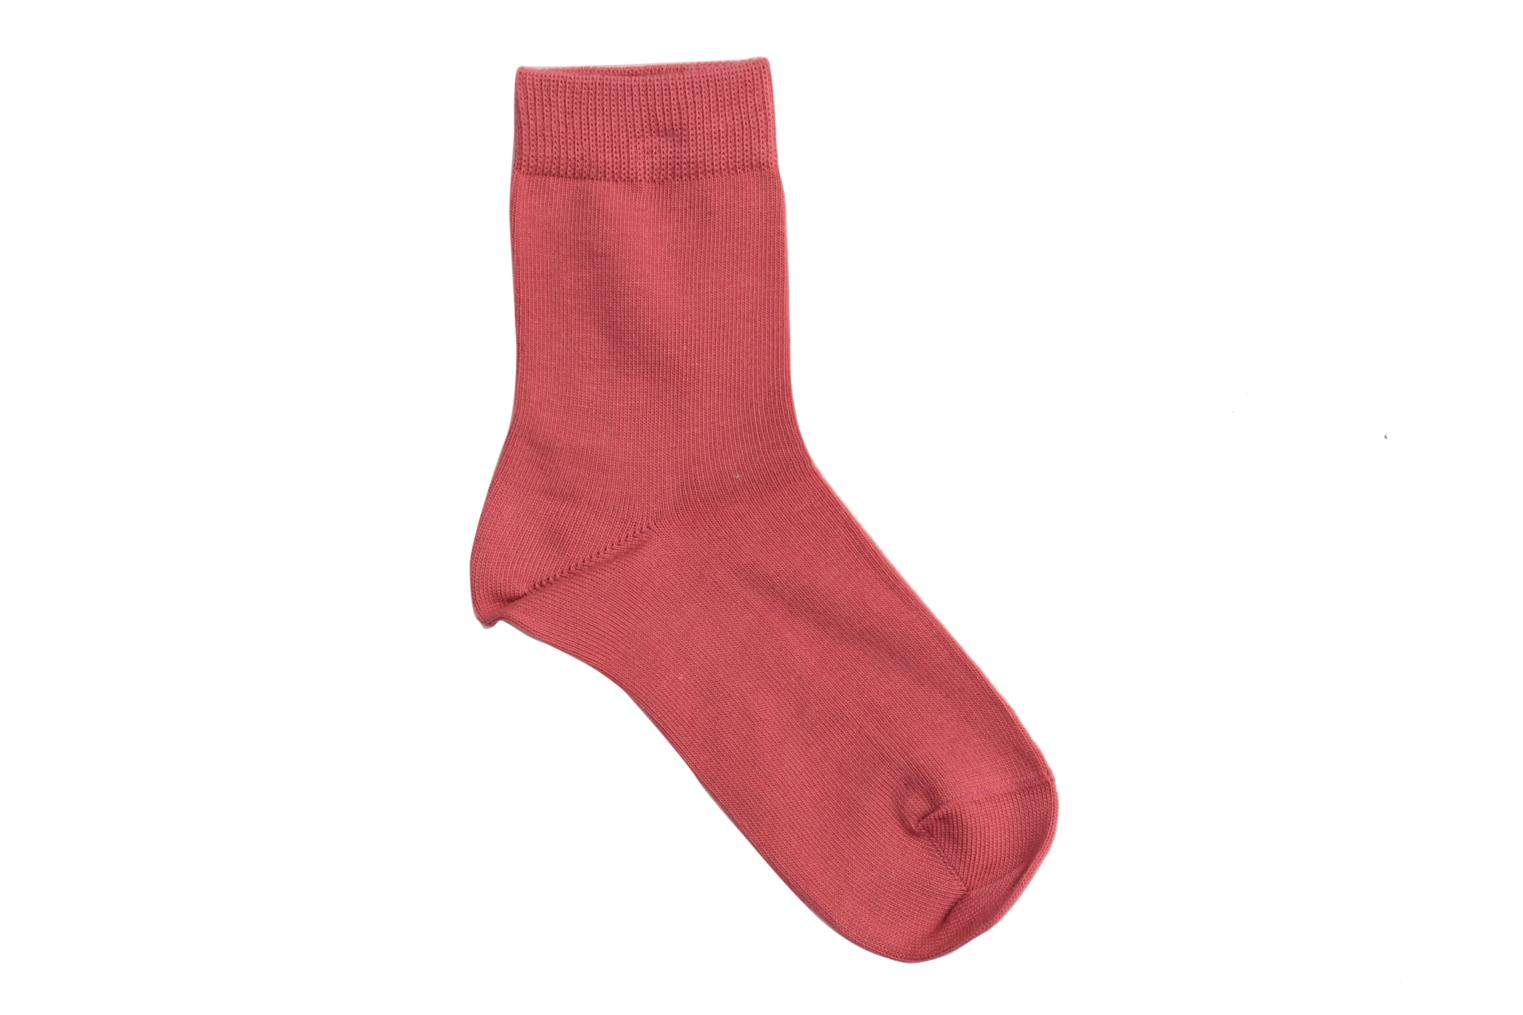 Chaussettes FAMILY 8636 rose